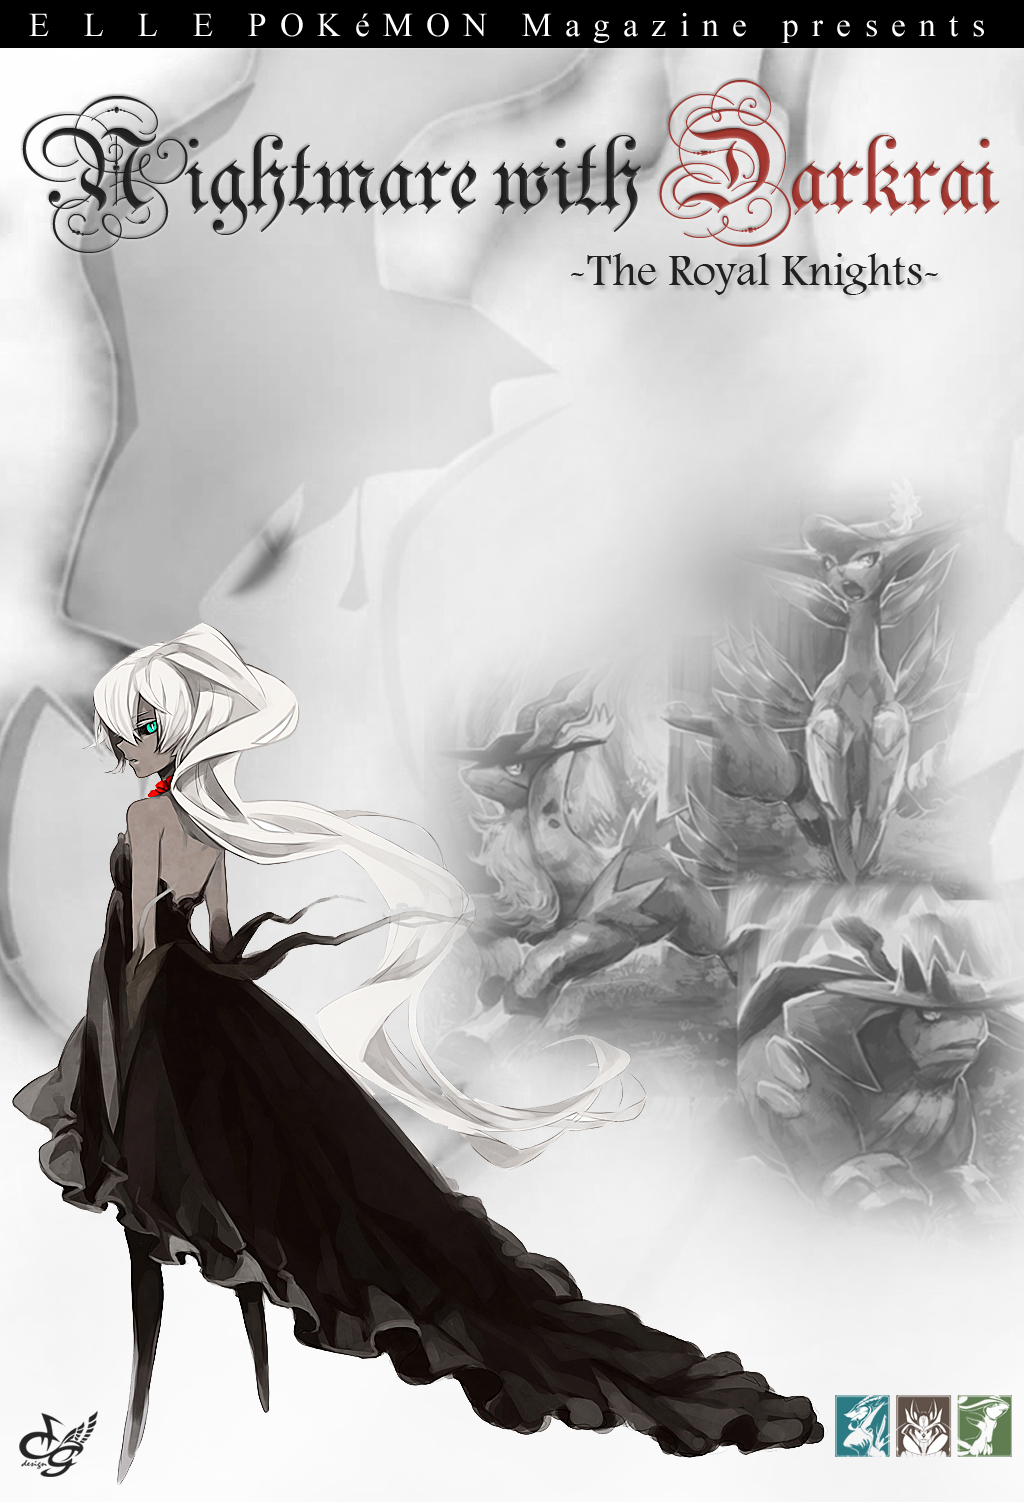 """Nightmare With Darkrai"" – The Royal Knights – : Death & Power"